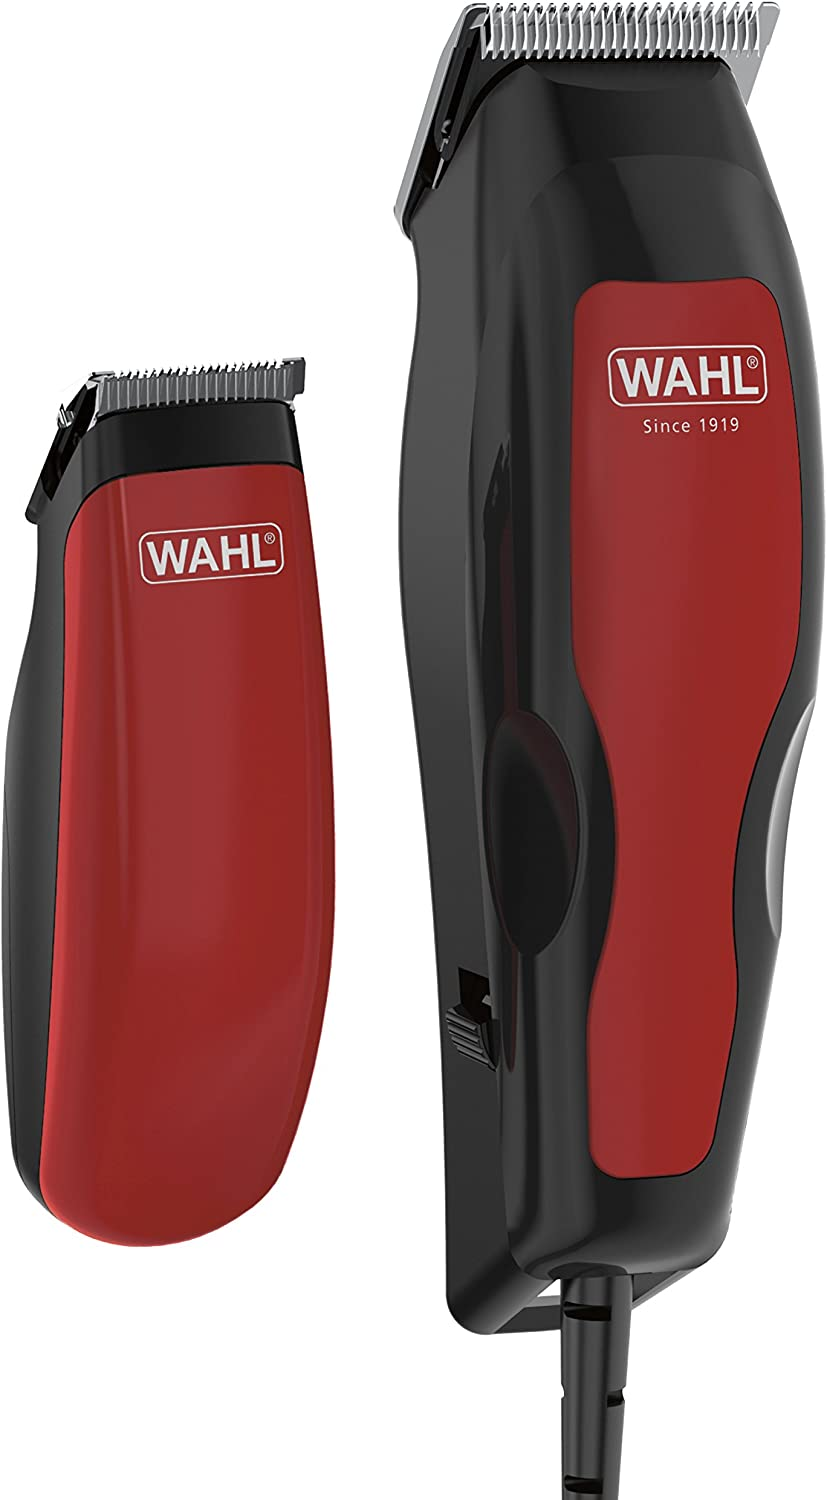 Wahl Home Pro Combo 100 - Set de cortapelos y recortadora, color ...